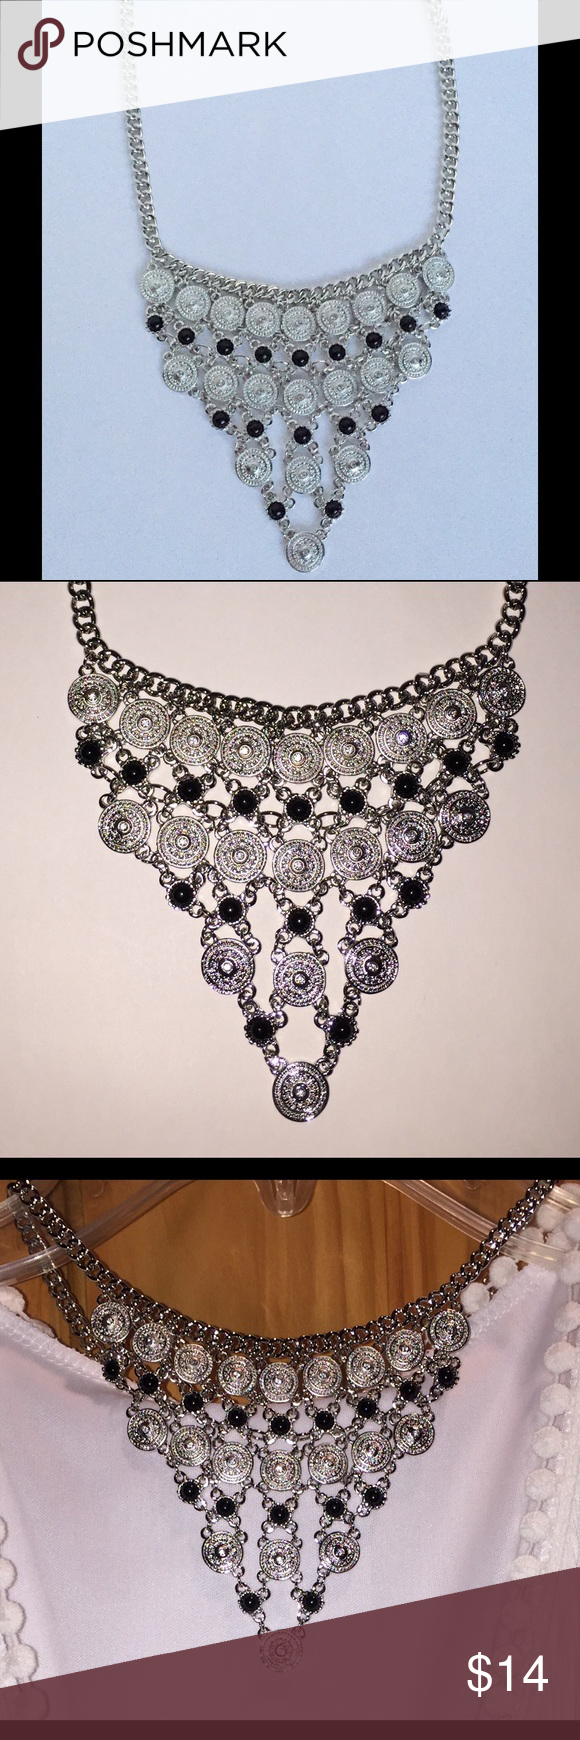 """SILVER & BLACK STATEMENT NECKLACE 18"""" This Necklace has is adjustable and about 18"""".  It's Urban Chic! NO TRADES! Jewelry Necklaces"""